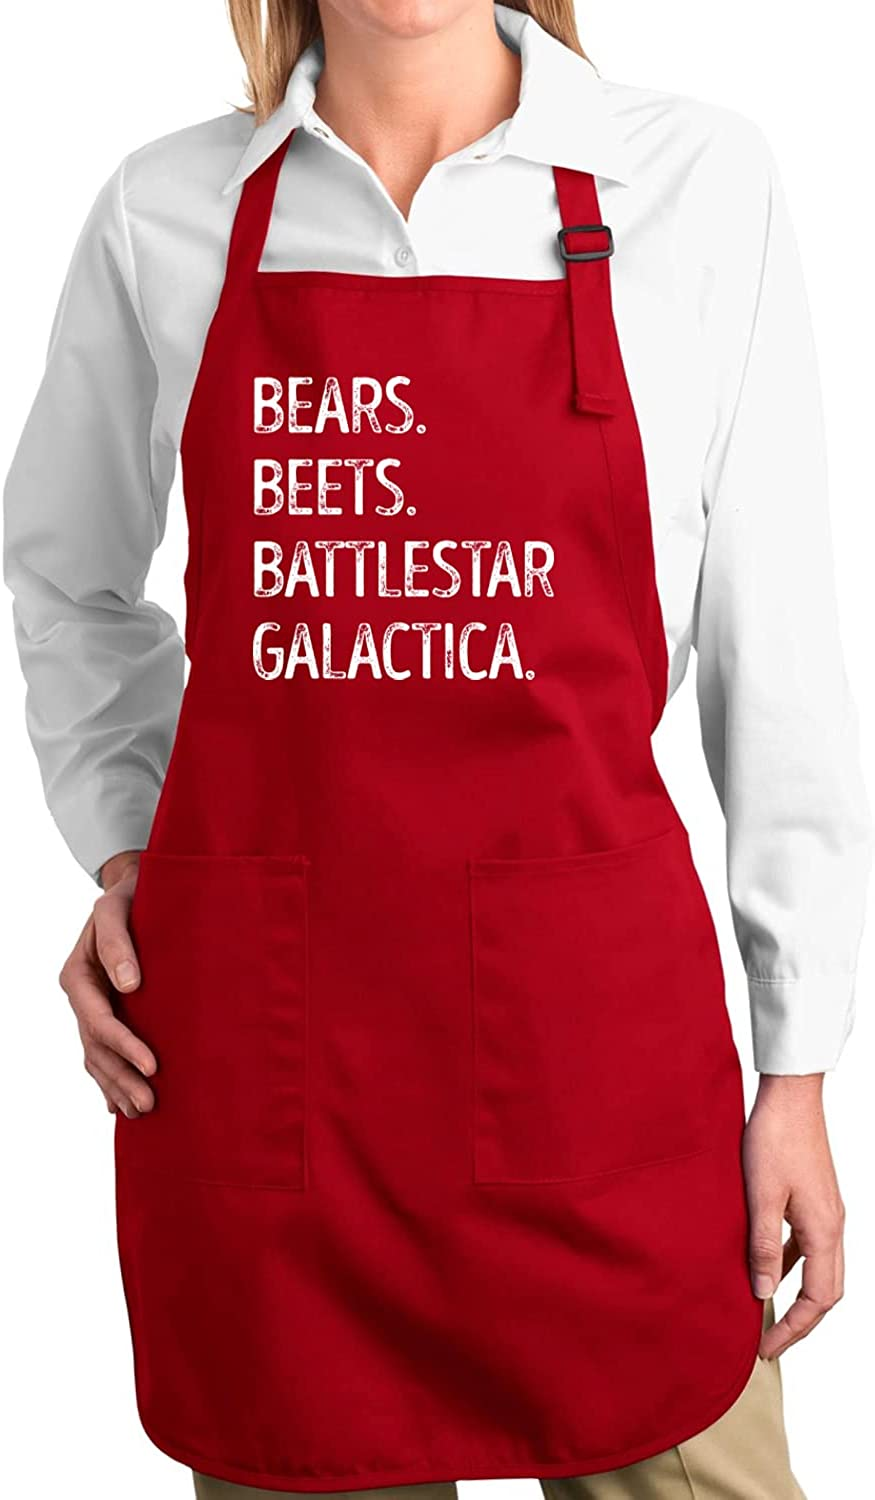 Wild Bobby Bears Beets Fact Battlestar Galactica Office Quote Kitchen BBQ Grilling Cooking Graphic Apron with Pockets